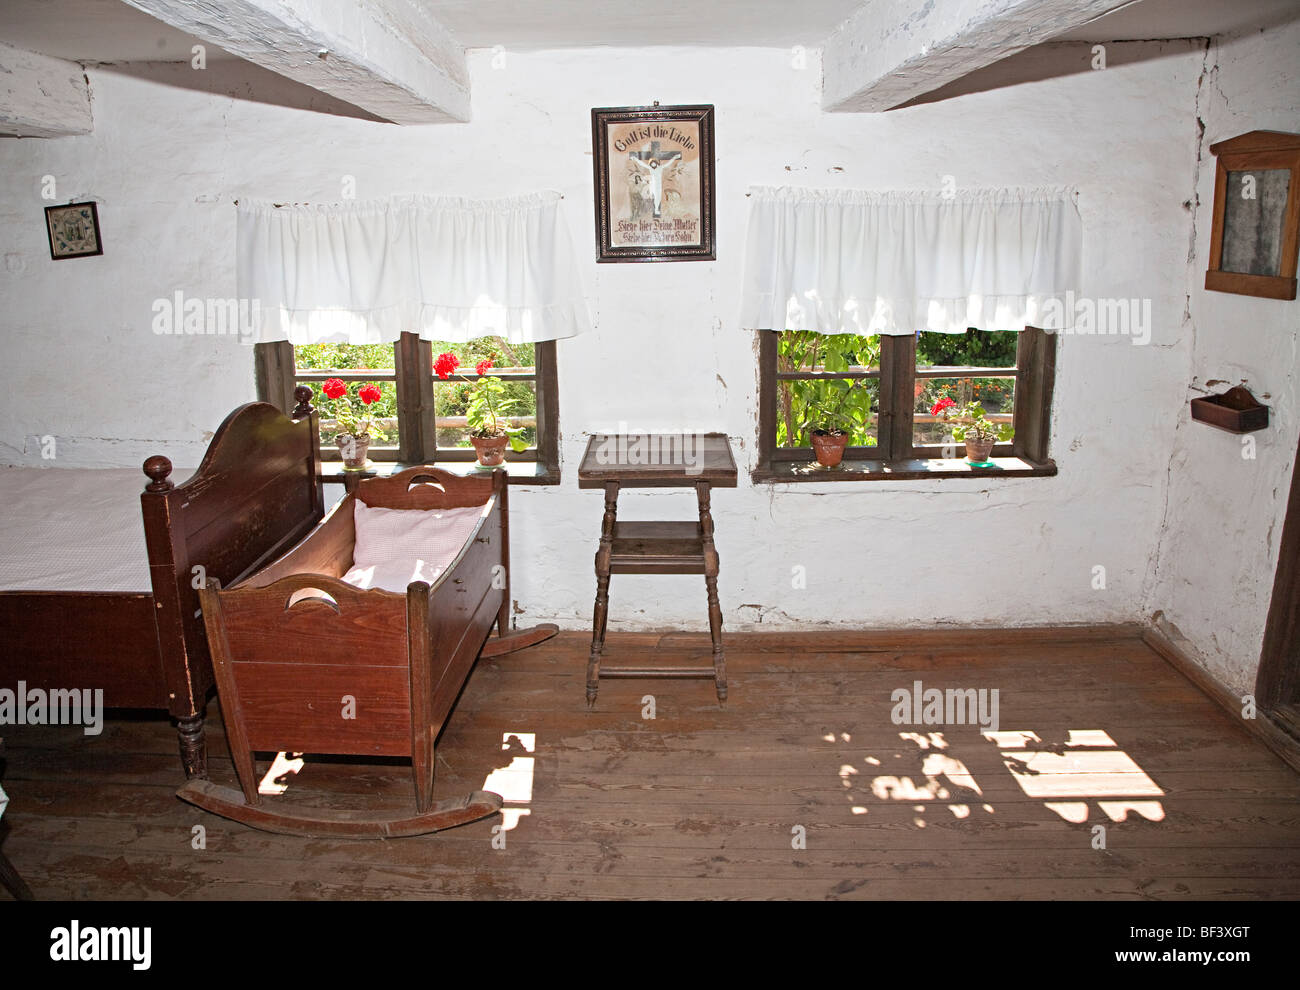 Bedroom in the Reimann family farmhouse with religious poster on wall Kluki open air folk museum Poland - Stock Image